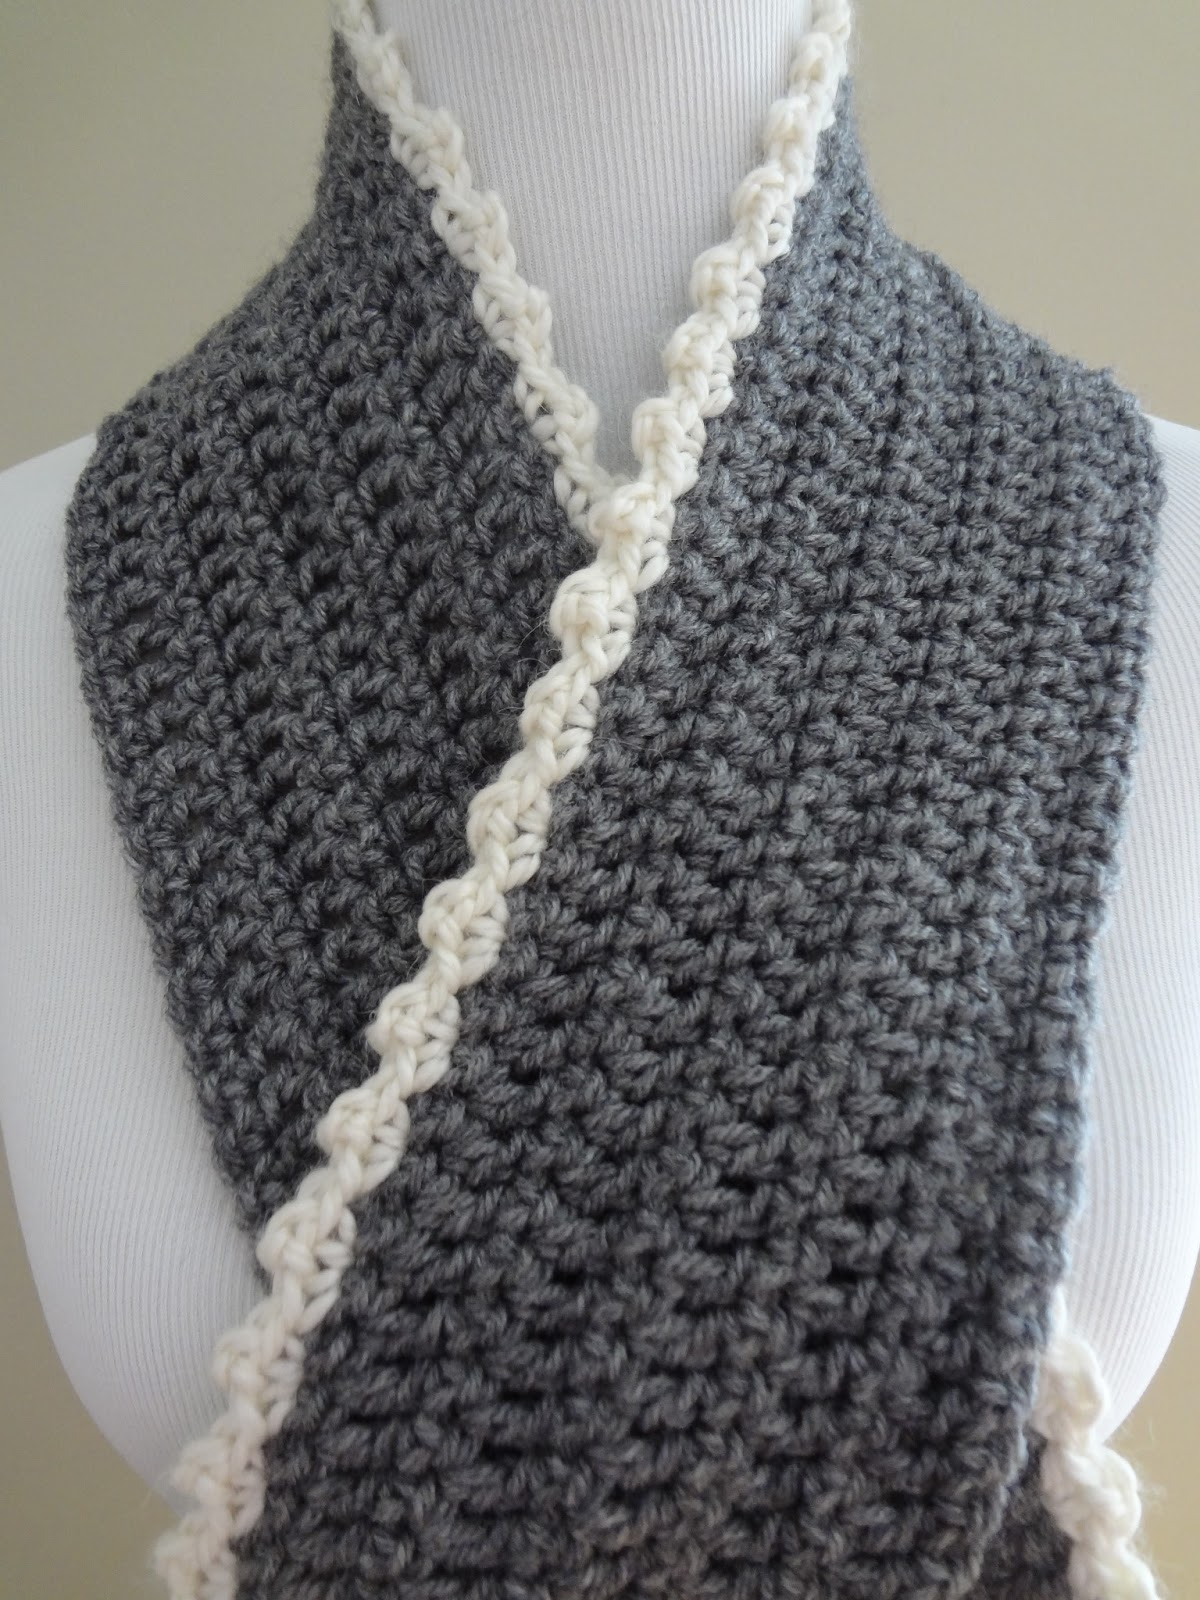 Double Knitting Tutorial Scarfs Fiber Flux Free Crochet Patterningrid Scarf